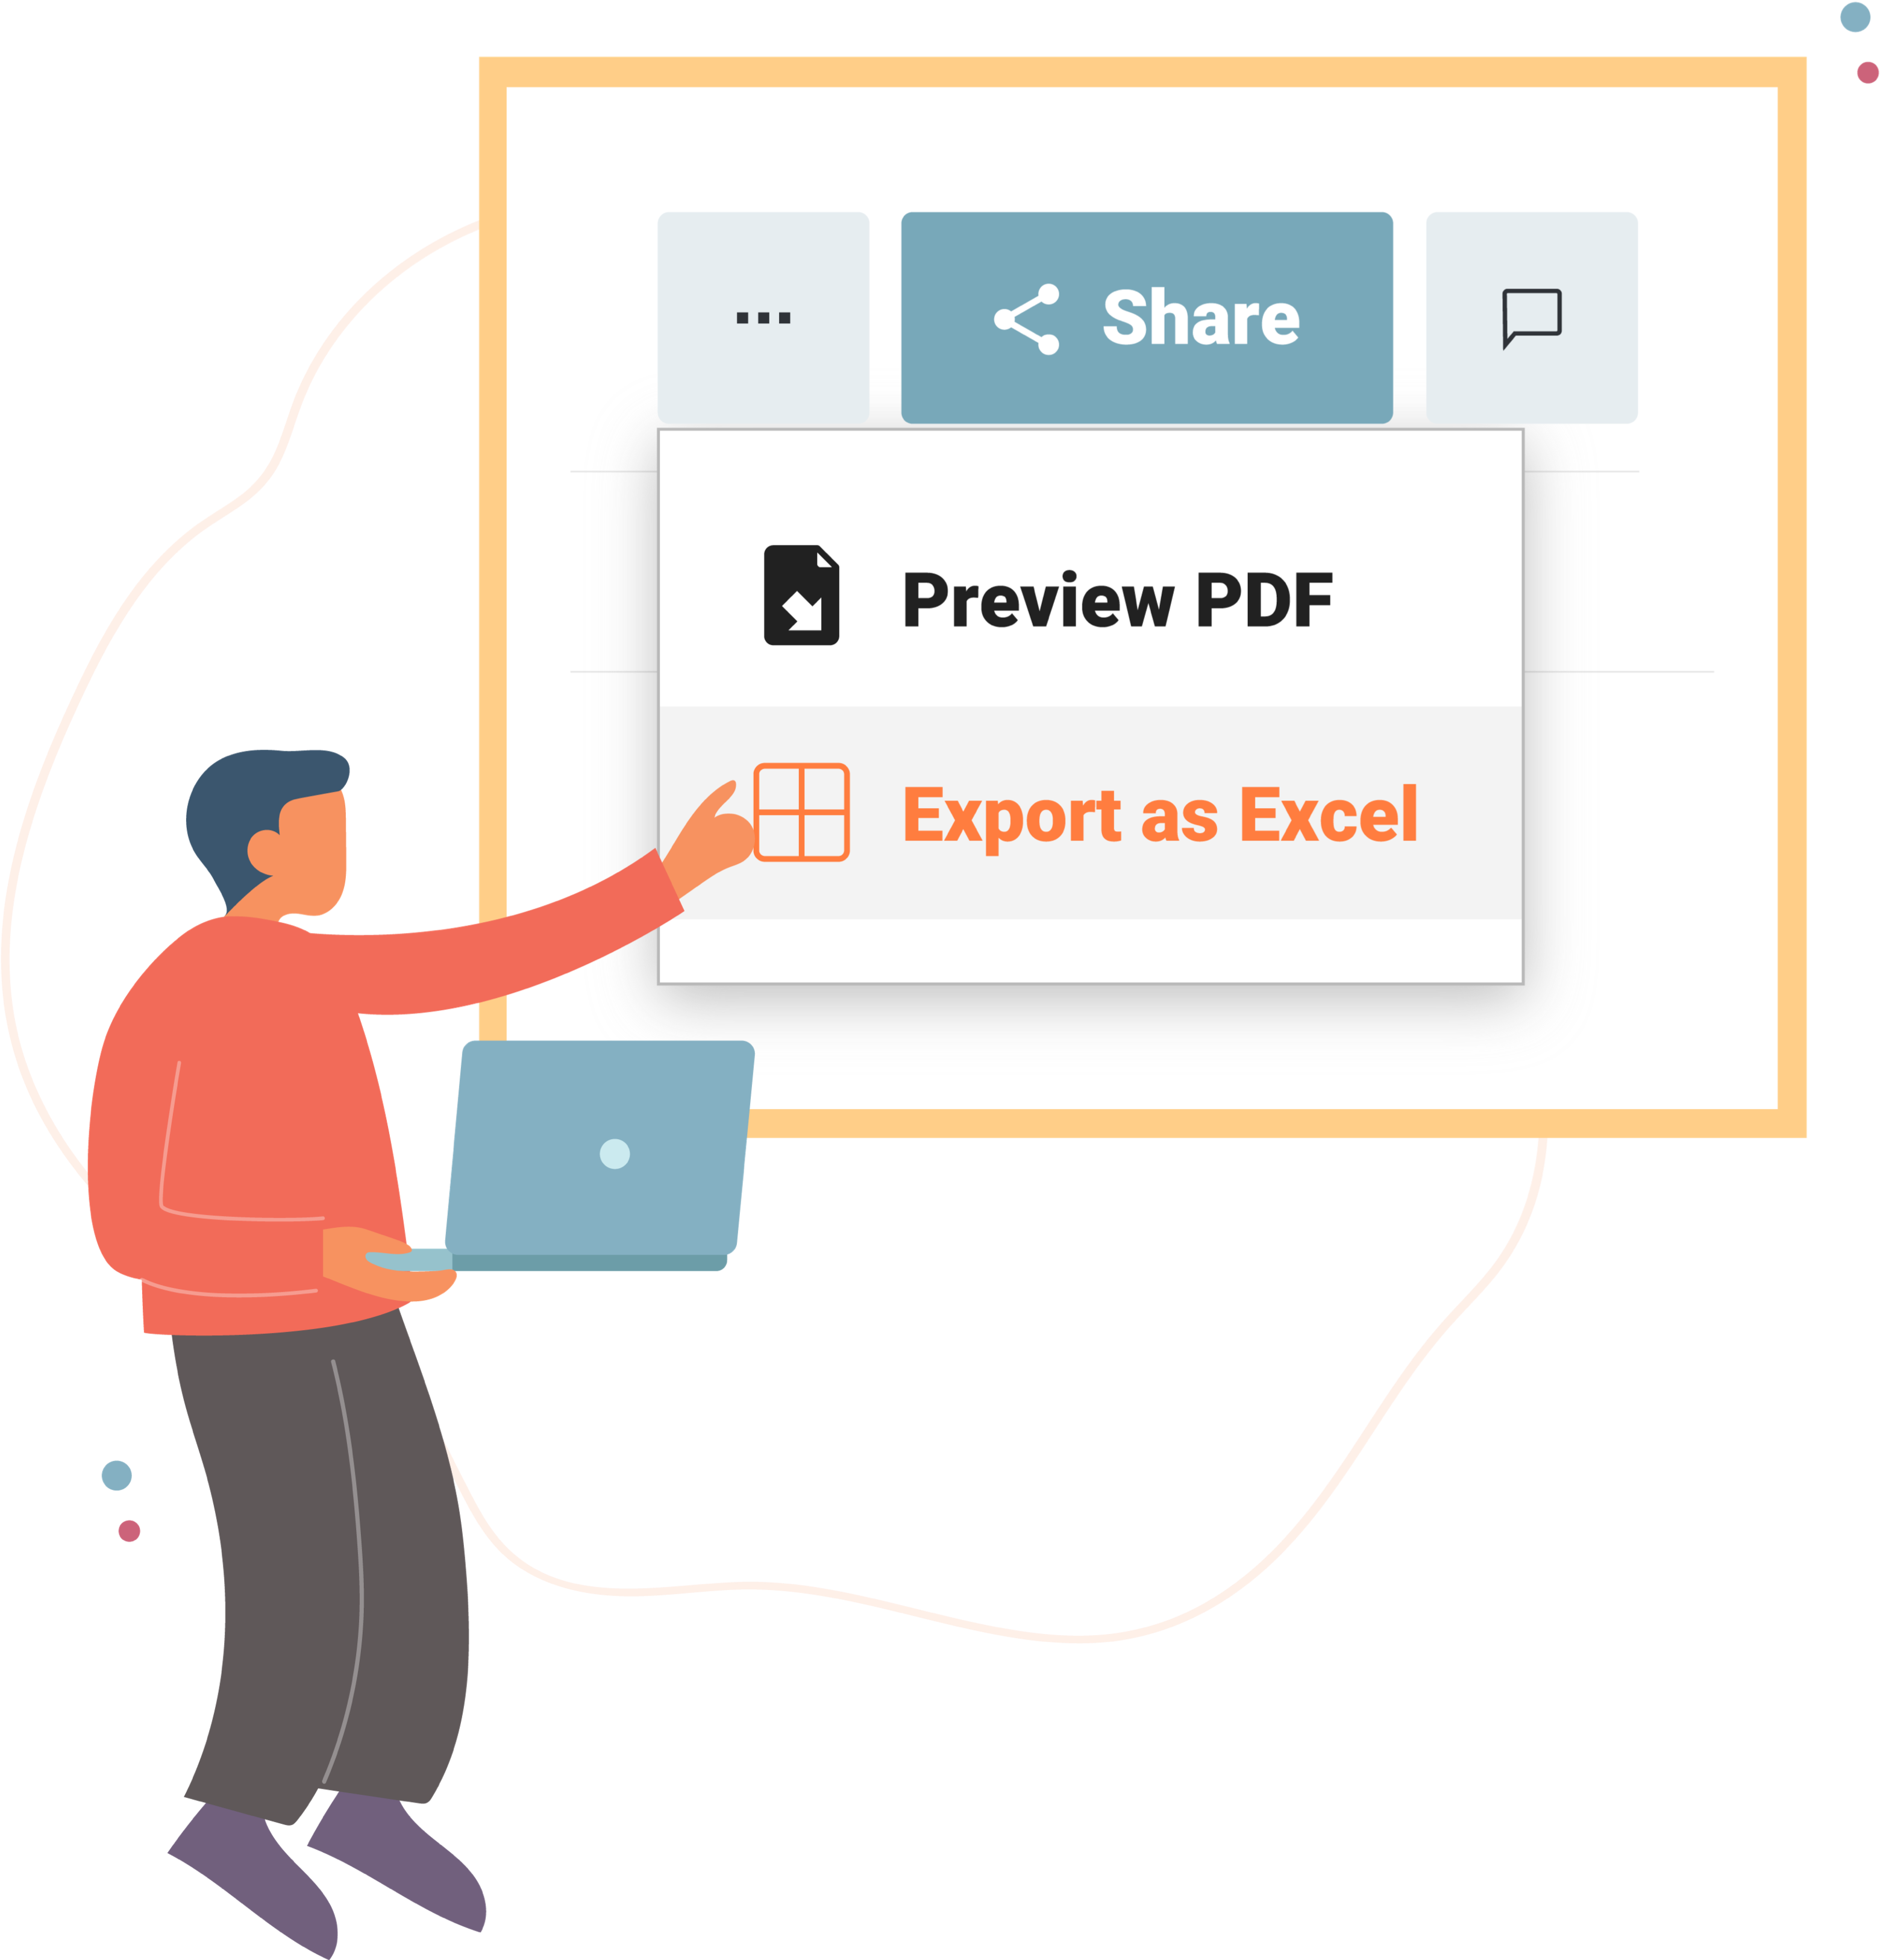 Sharing is as easy as exporting to PDF or Excel